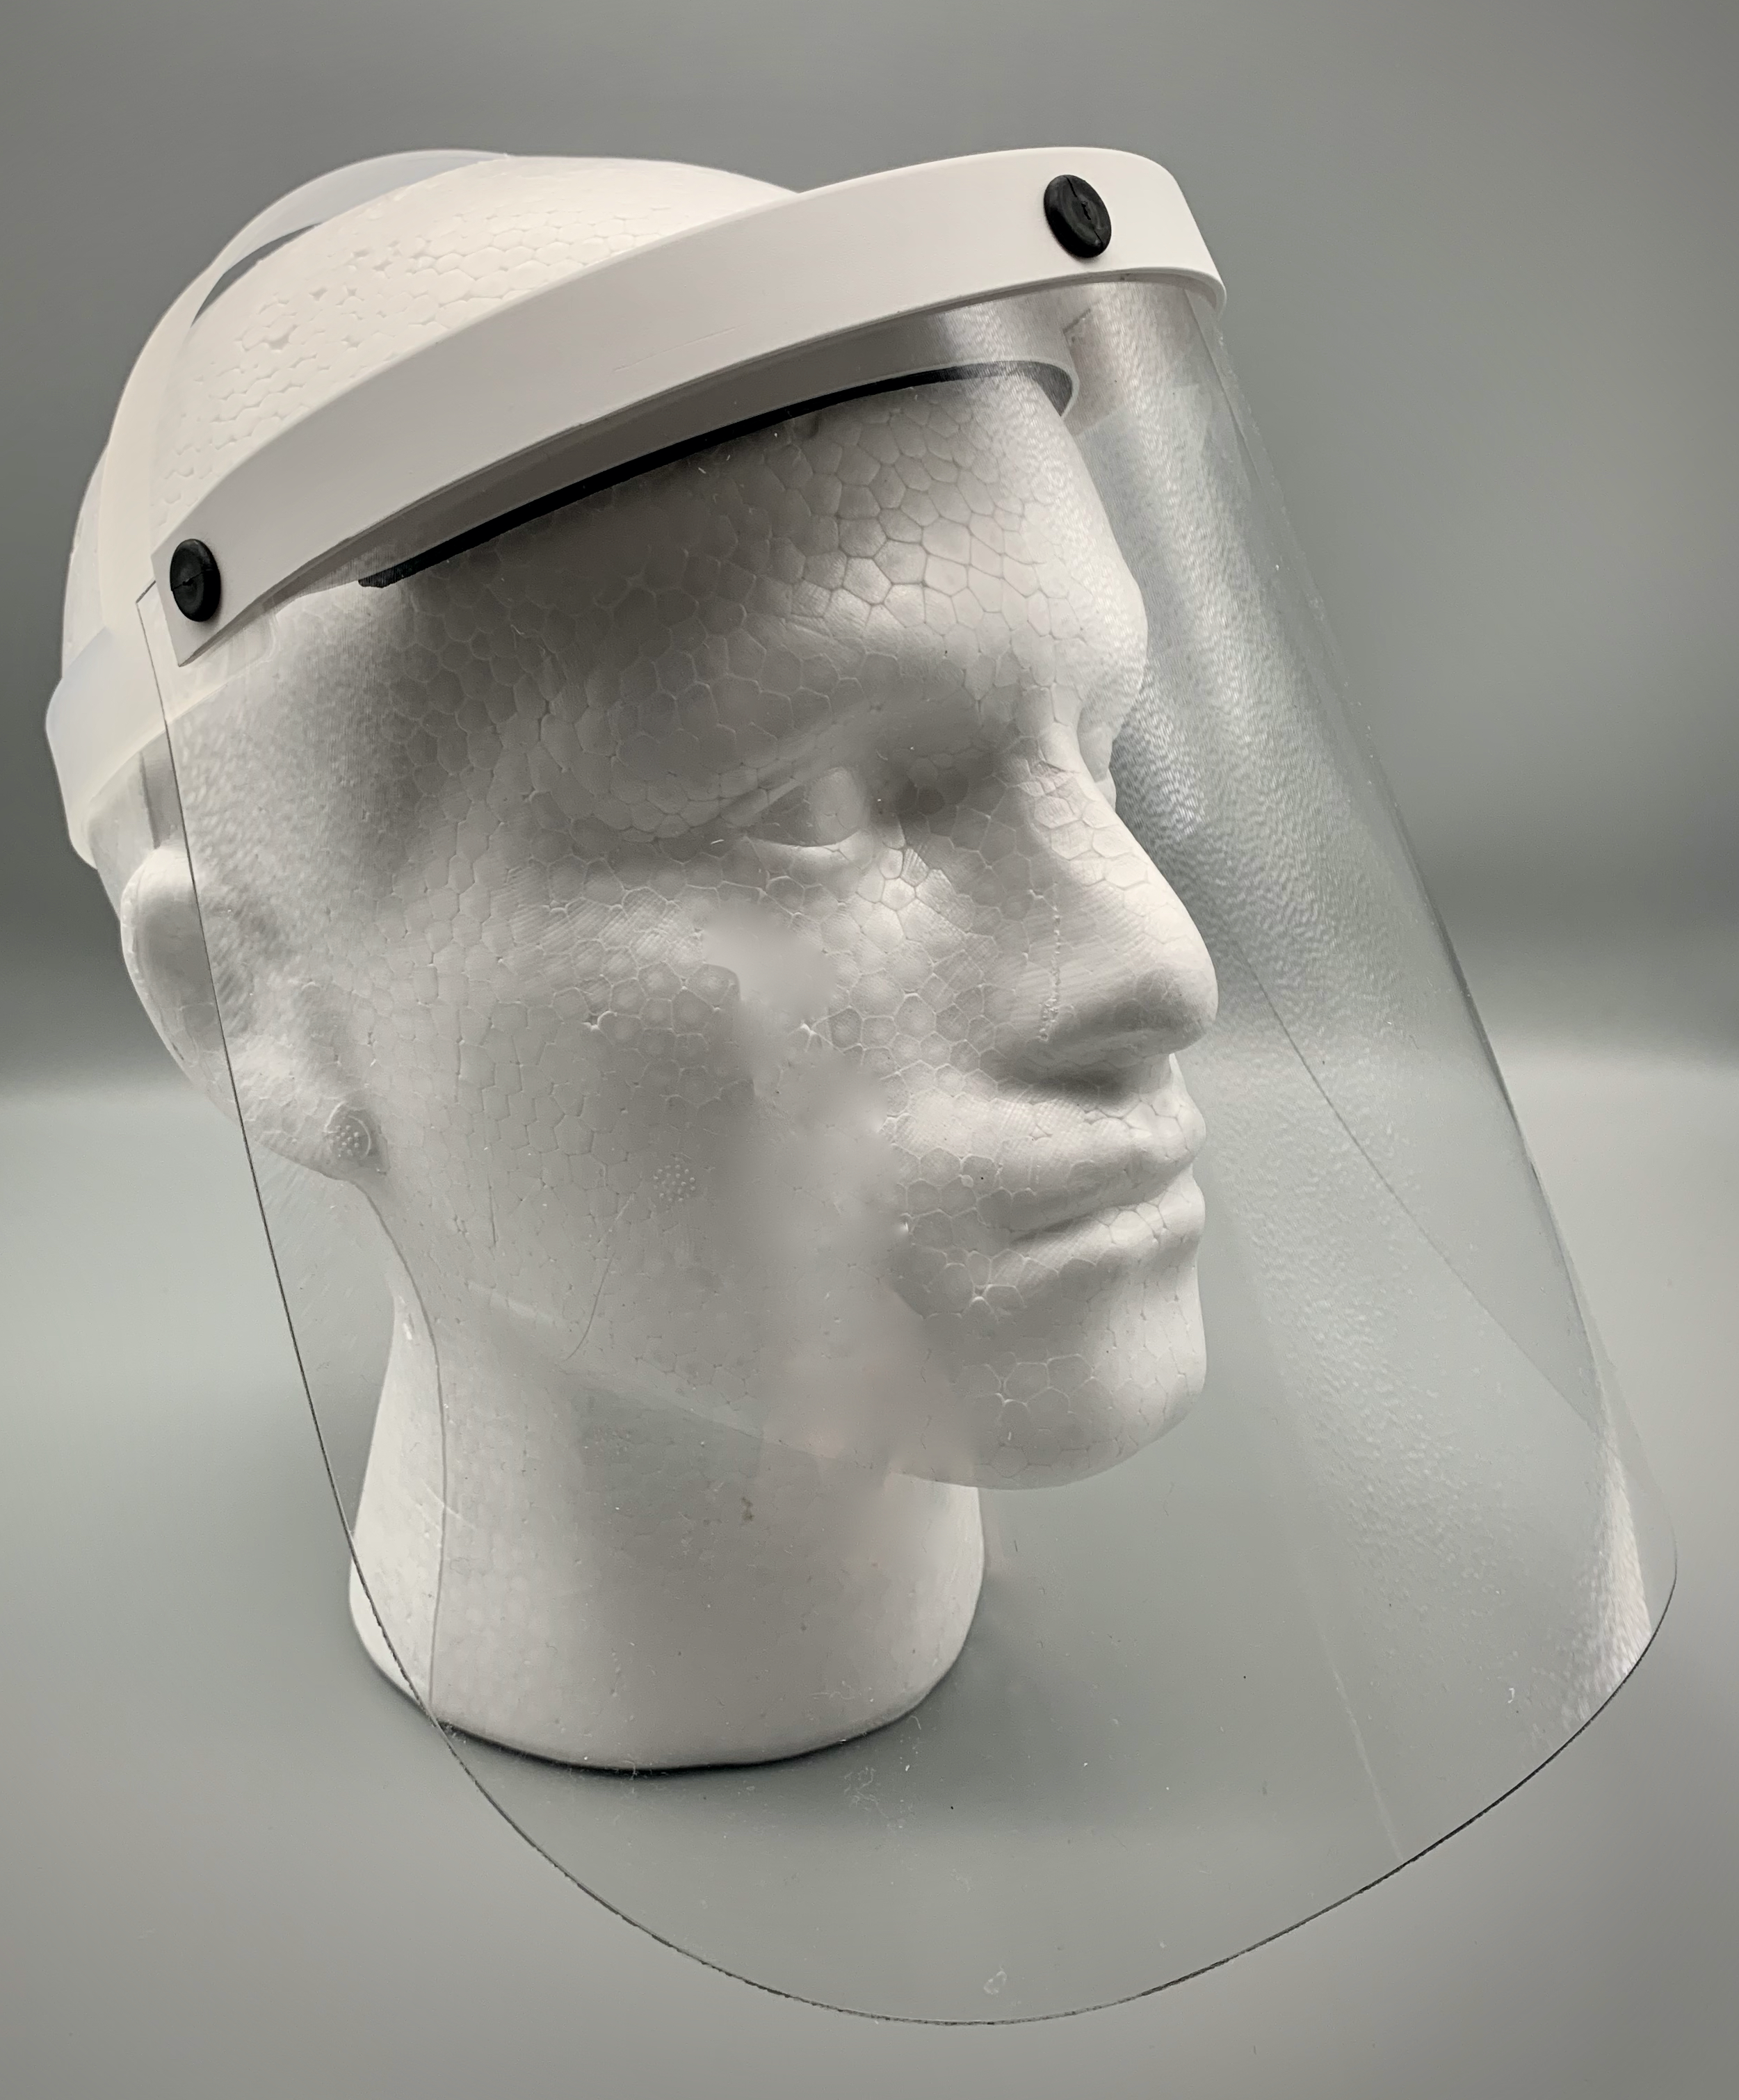 industrial face mask front image